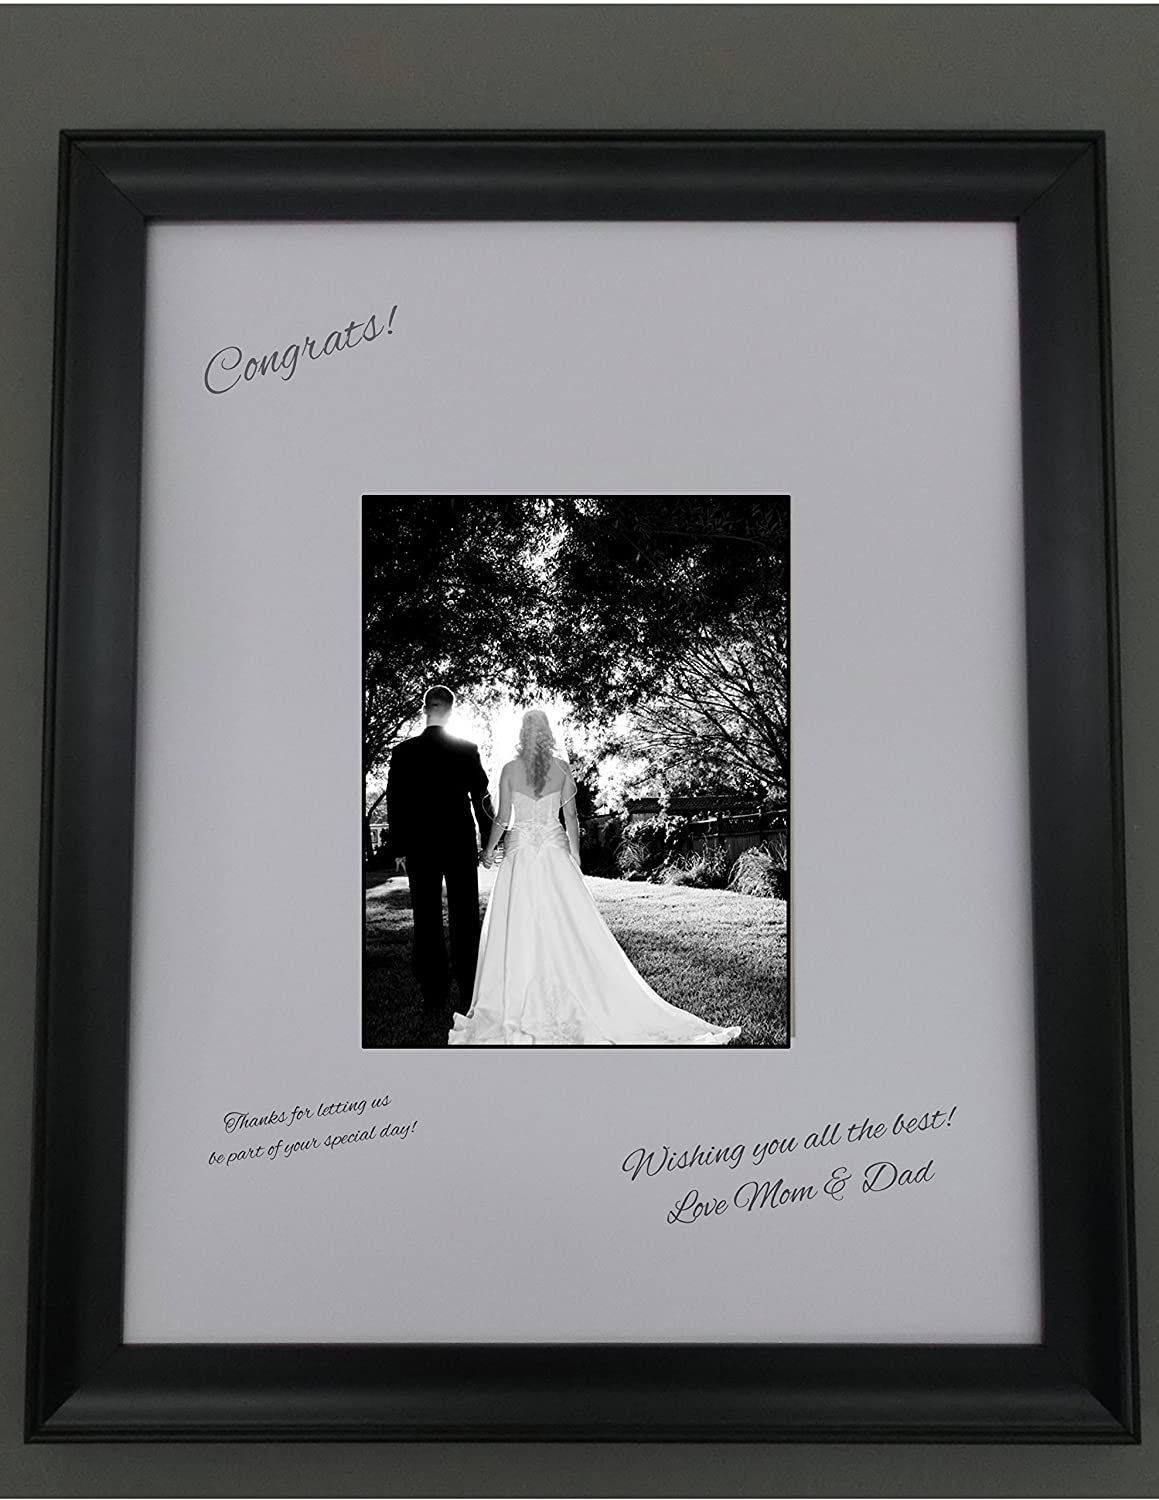 16x20 Black Frame with white signature mat for 8x10 picture, perfect ...